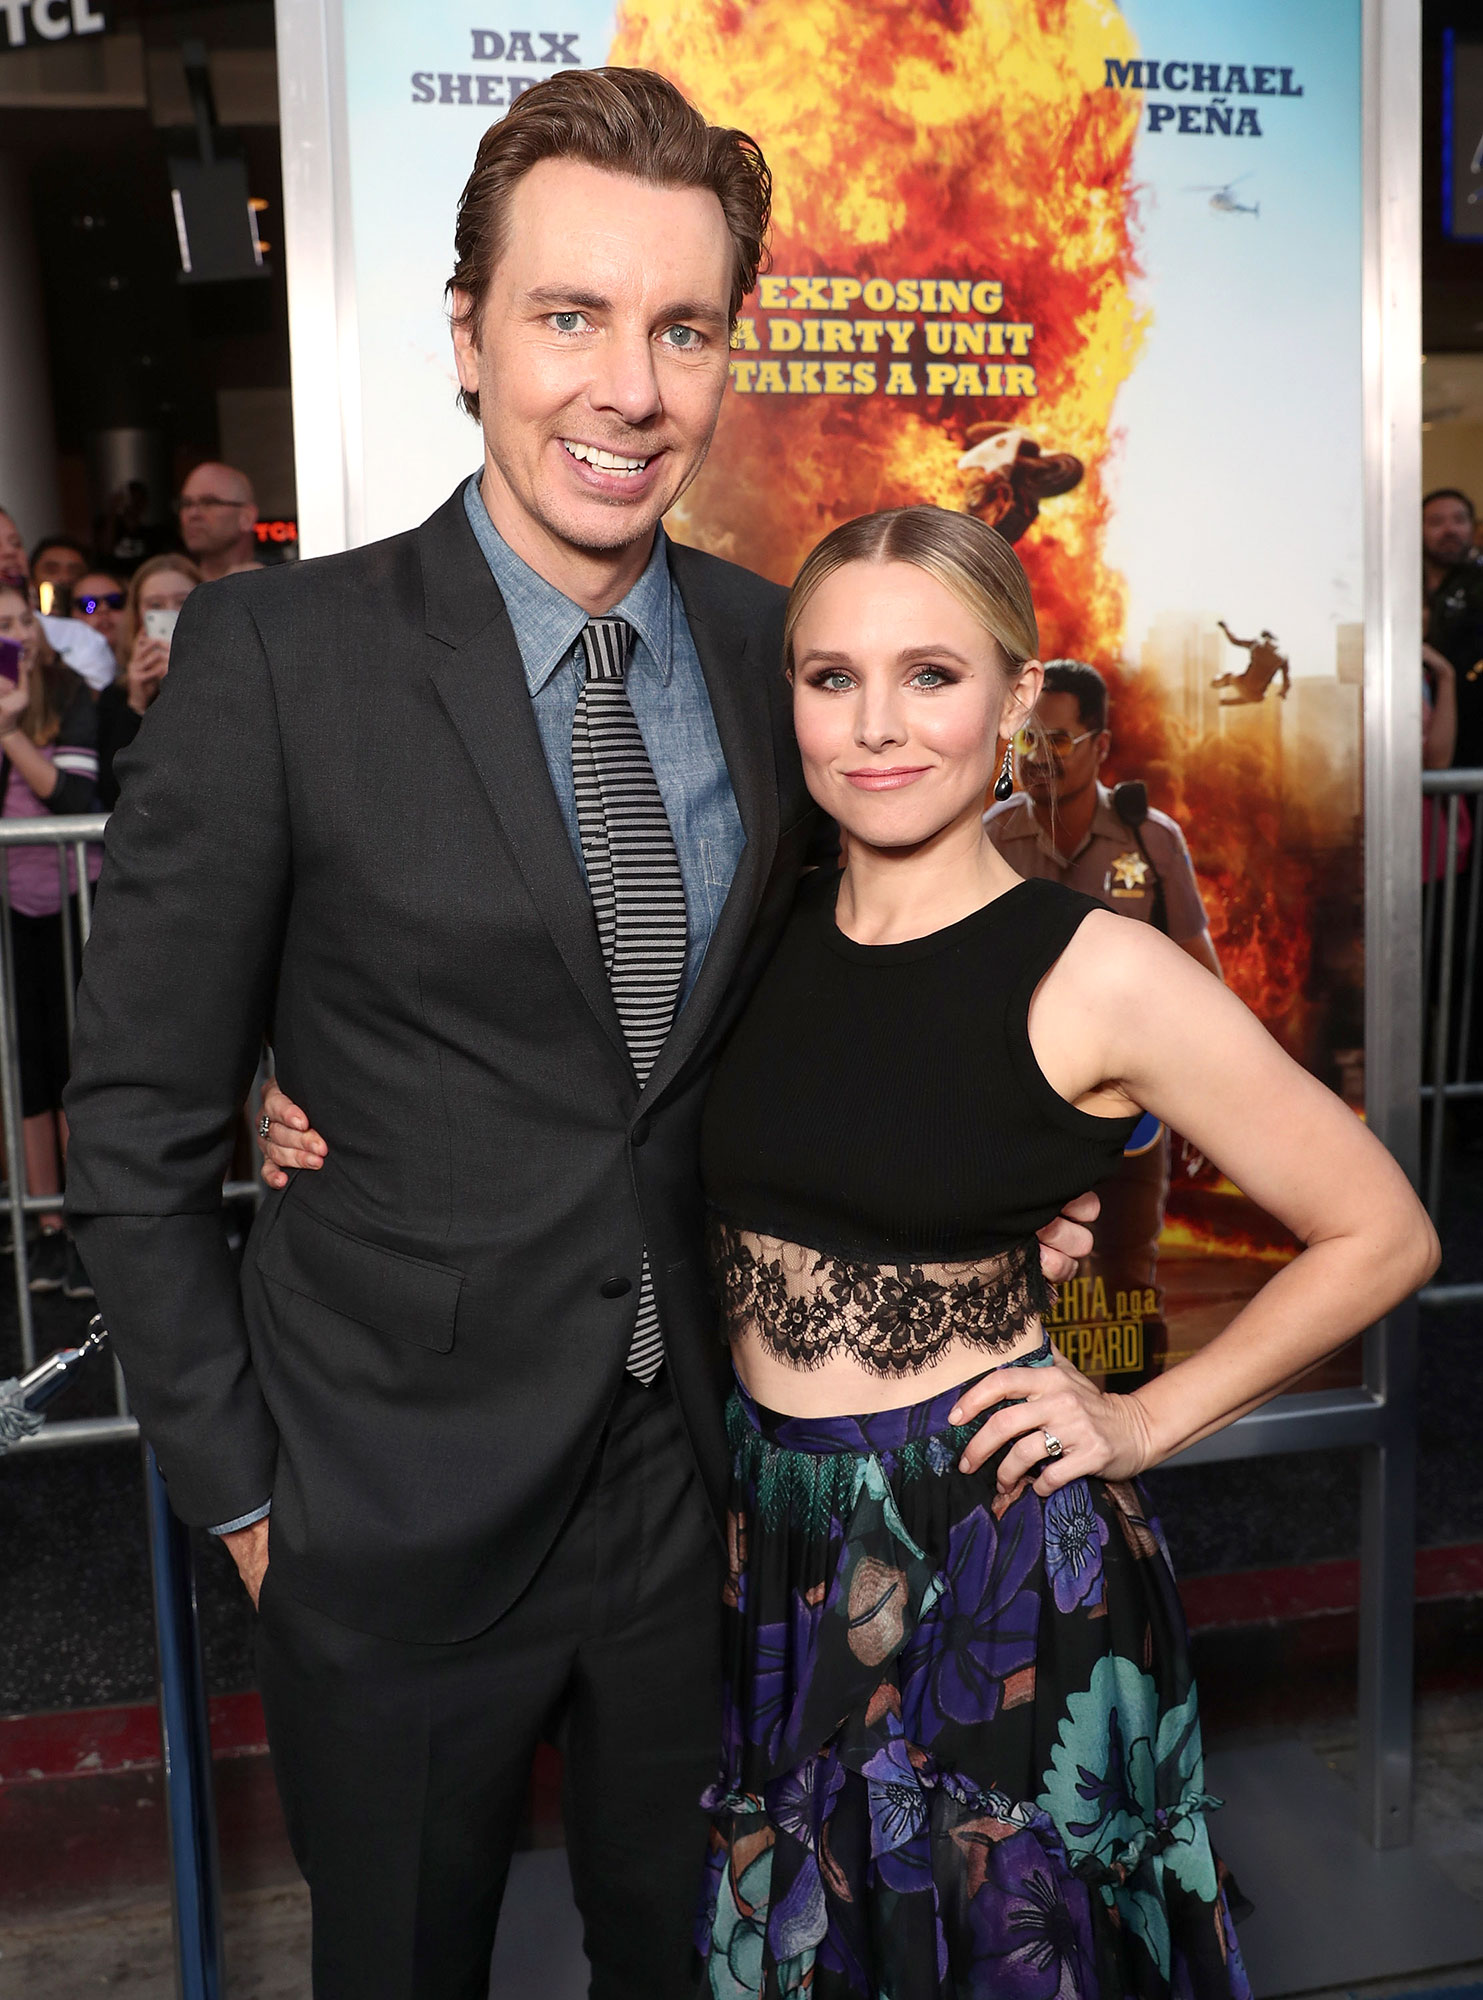 Dax Shepard Initially Turned Down 'Parenthood' to Be With Kristen Bell - Dax Shepard and Kristen Bell attend the premiere of 'CHiPS at TCL Chinese Theatre in Hollywood on March 20, 2017.